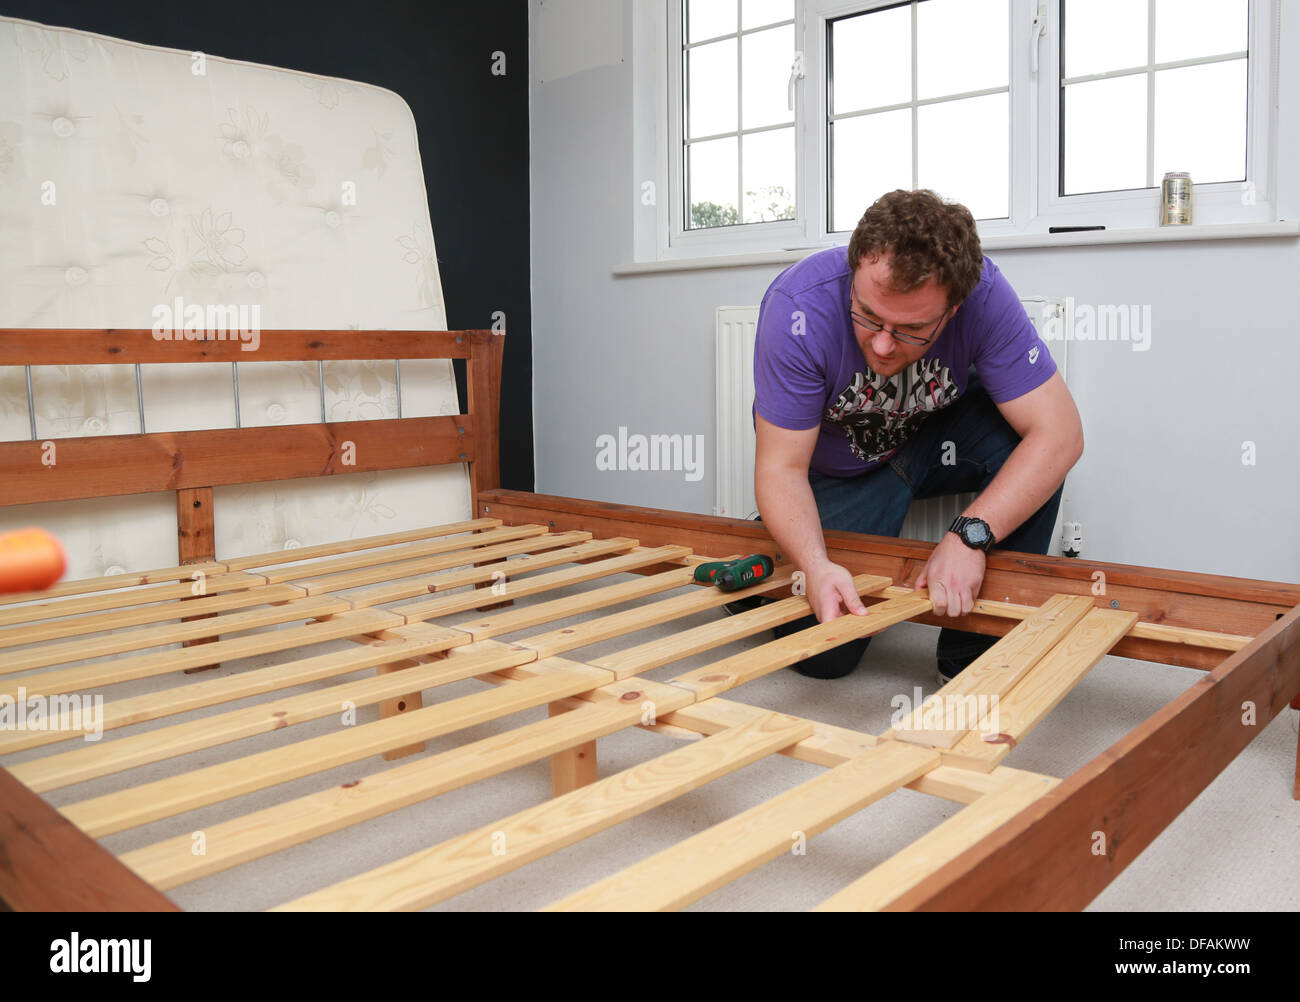 A man putting a bed together Stock Photo: 61086085 - Alamy